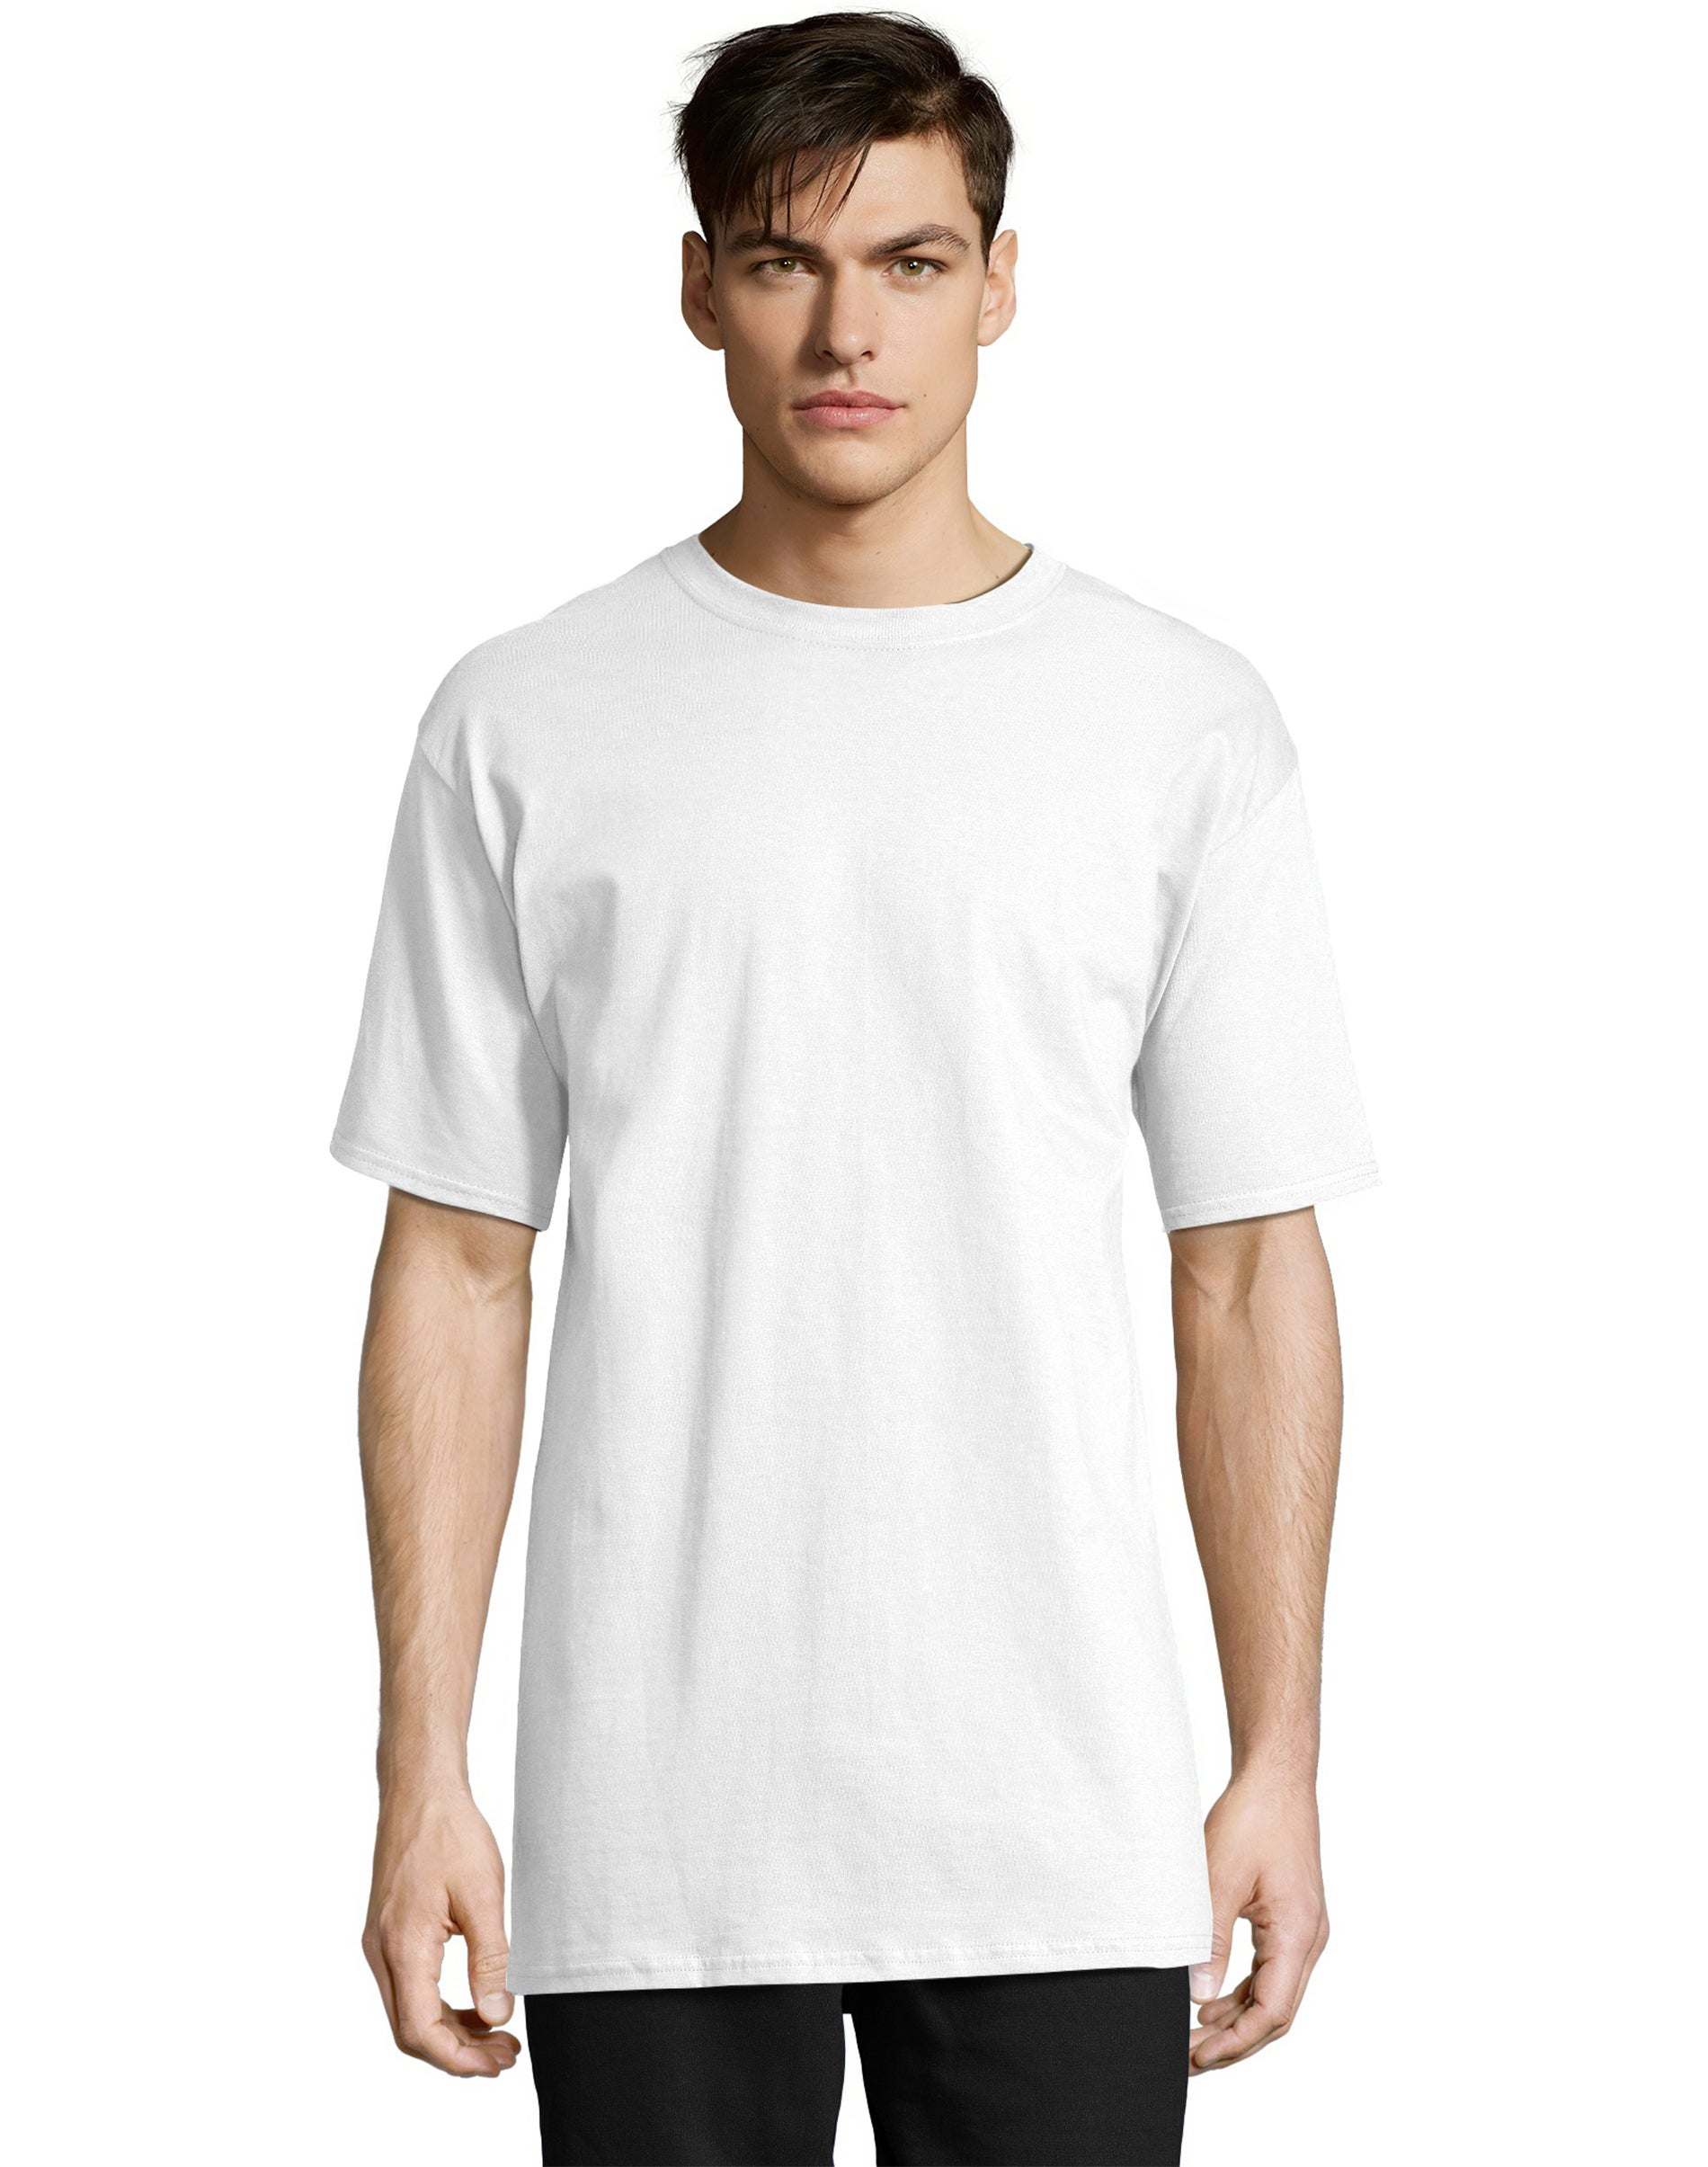 NWT Mens Hanes Beefy 2XL Cotton Blend  S//S Crew Neck Graphic Tee Shirt